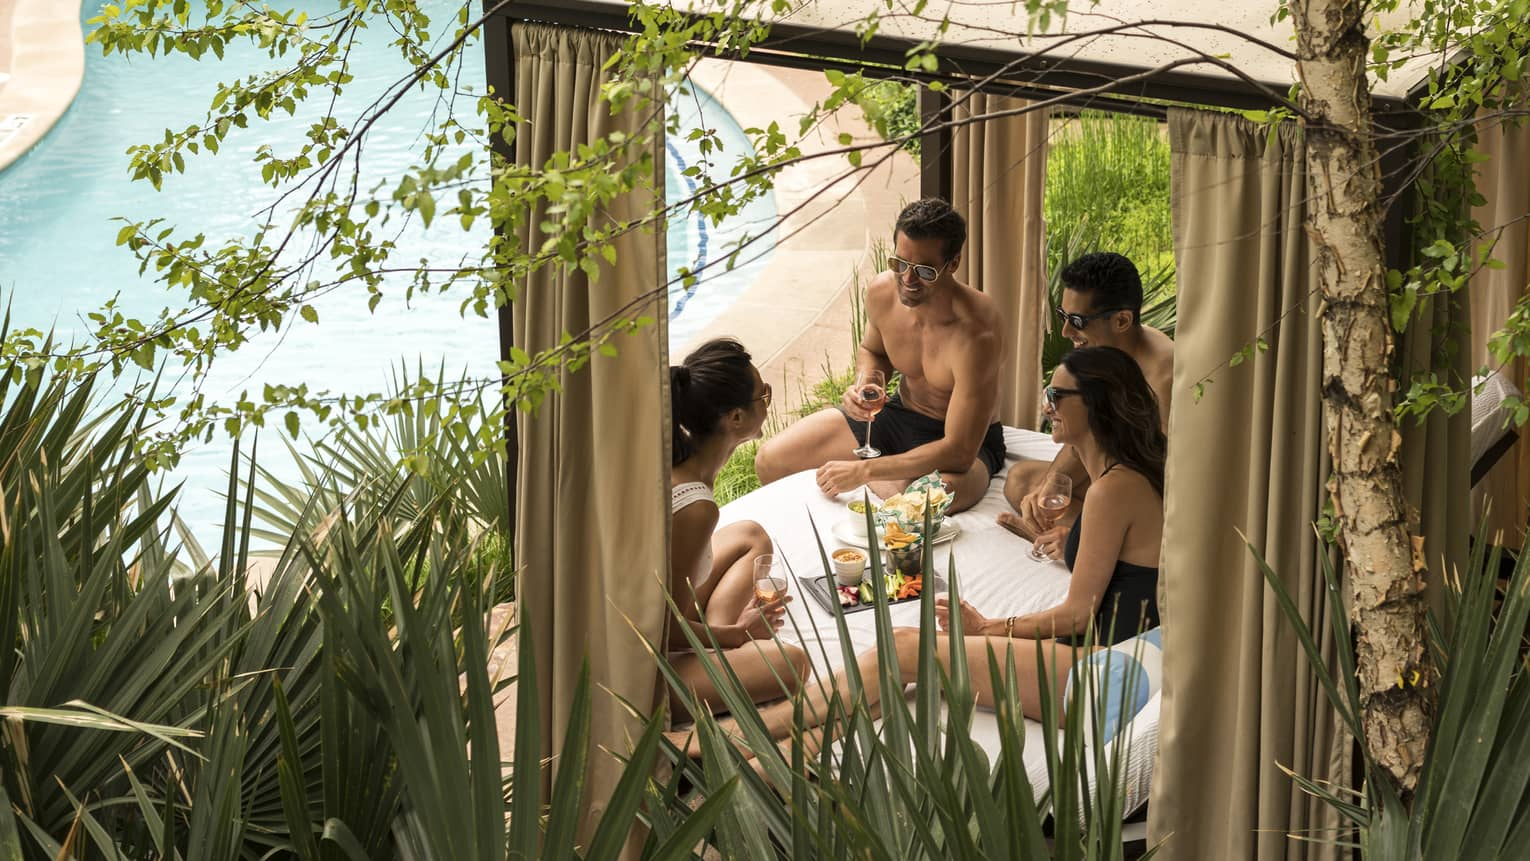 Two men and two women sitting under a cabana and talking next to a pool, there is greenery around them.